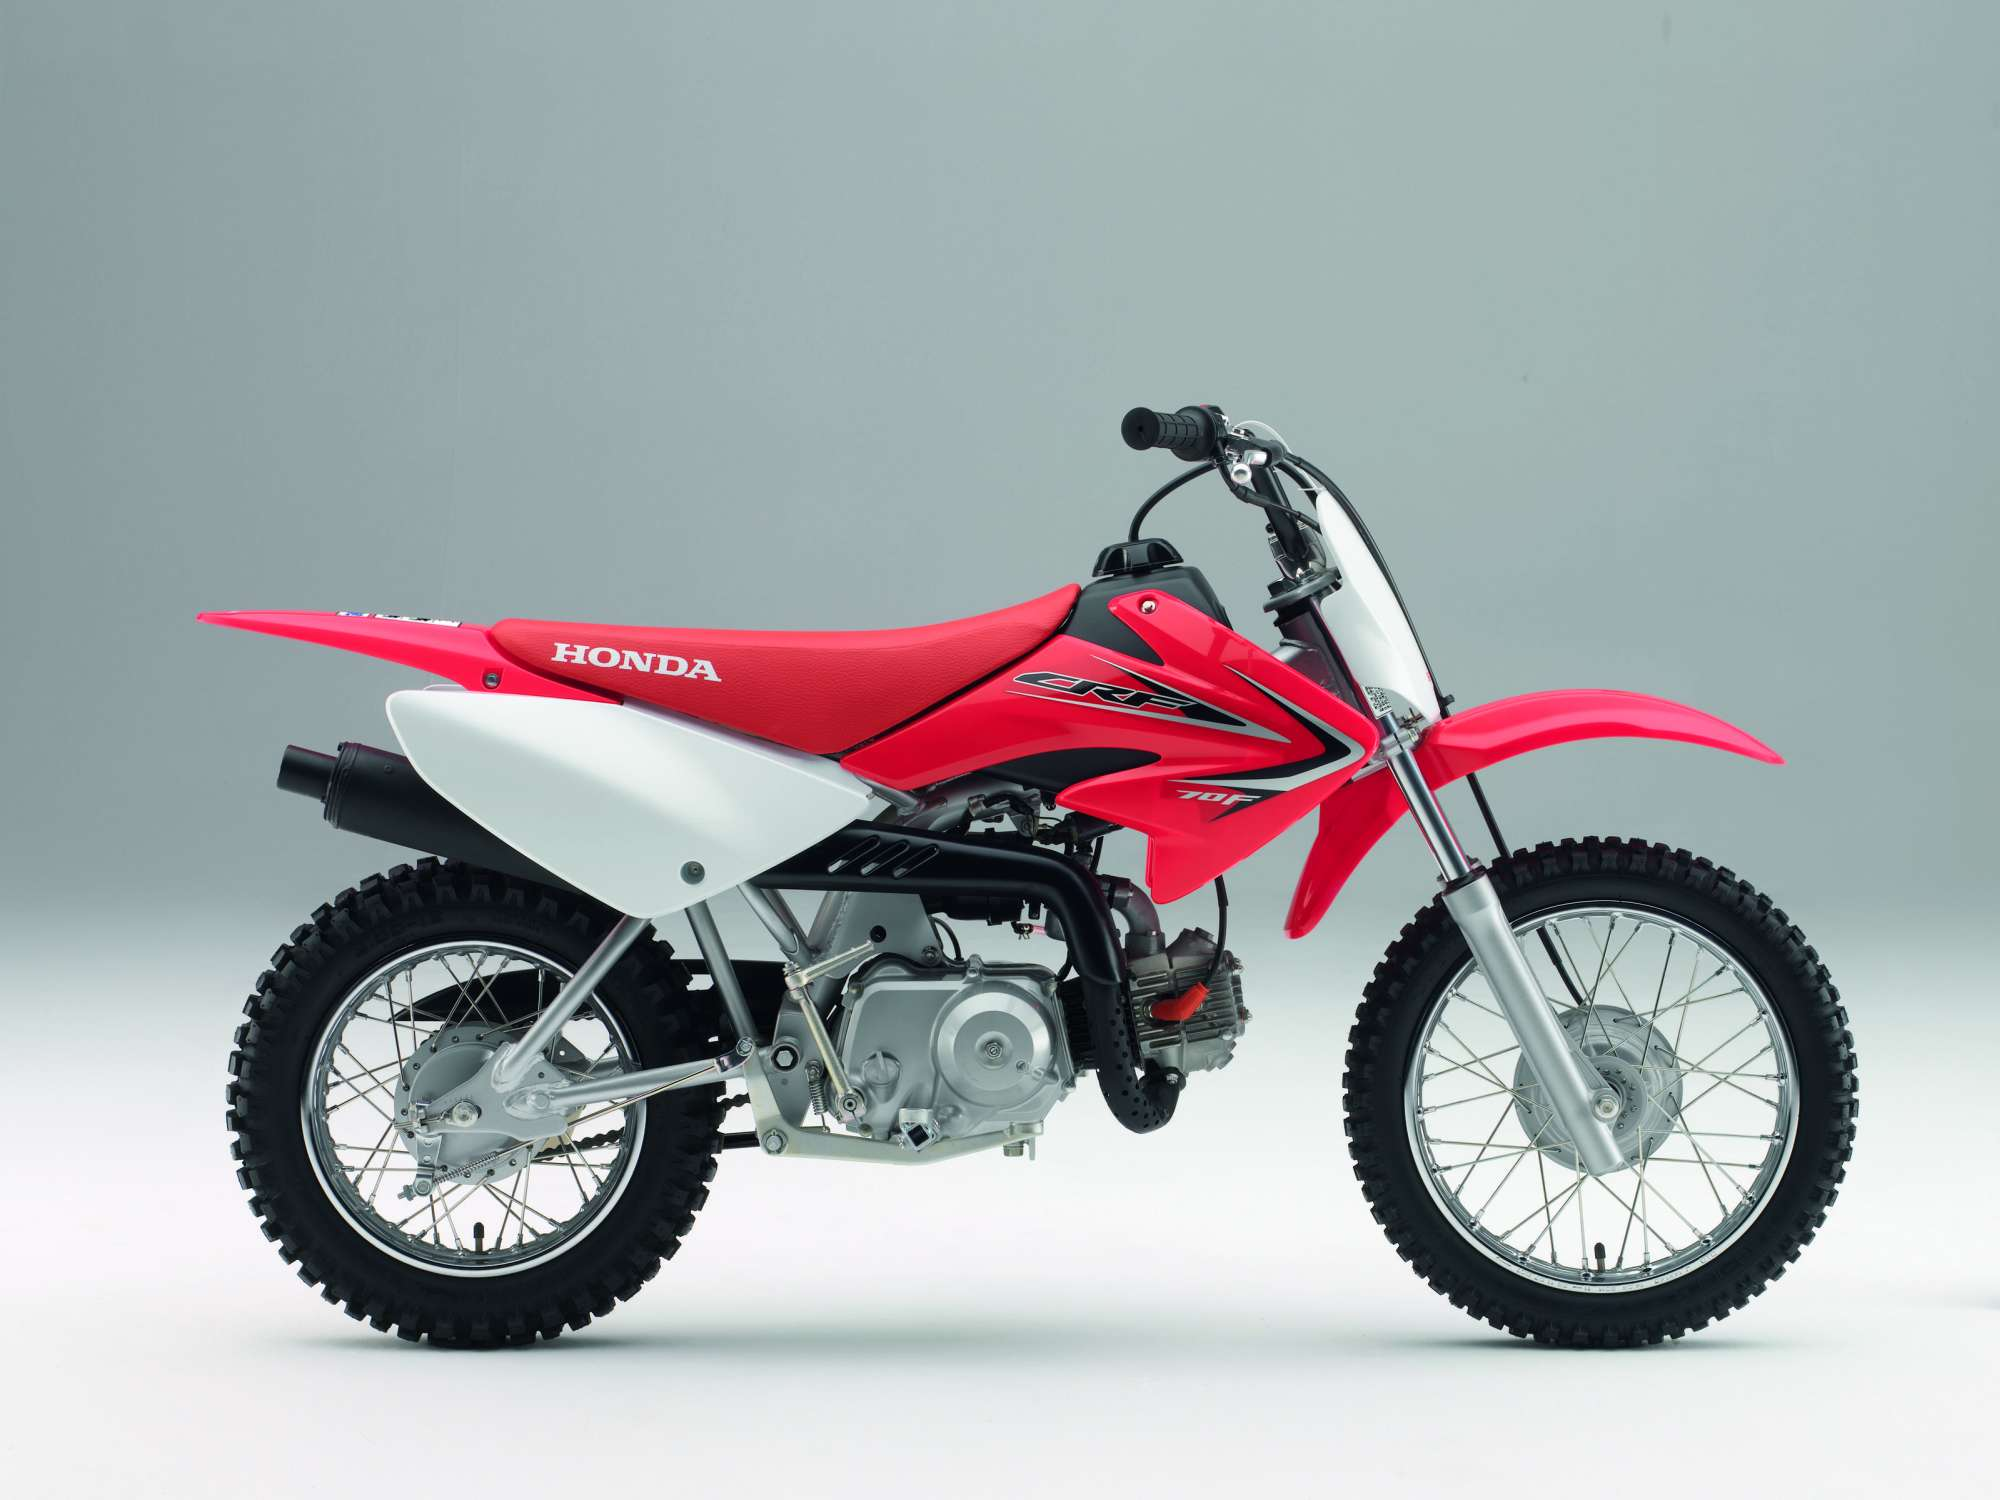 Honda Crf 70 Car Interior Design